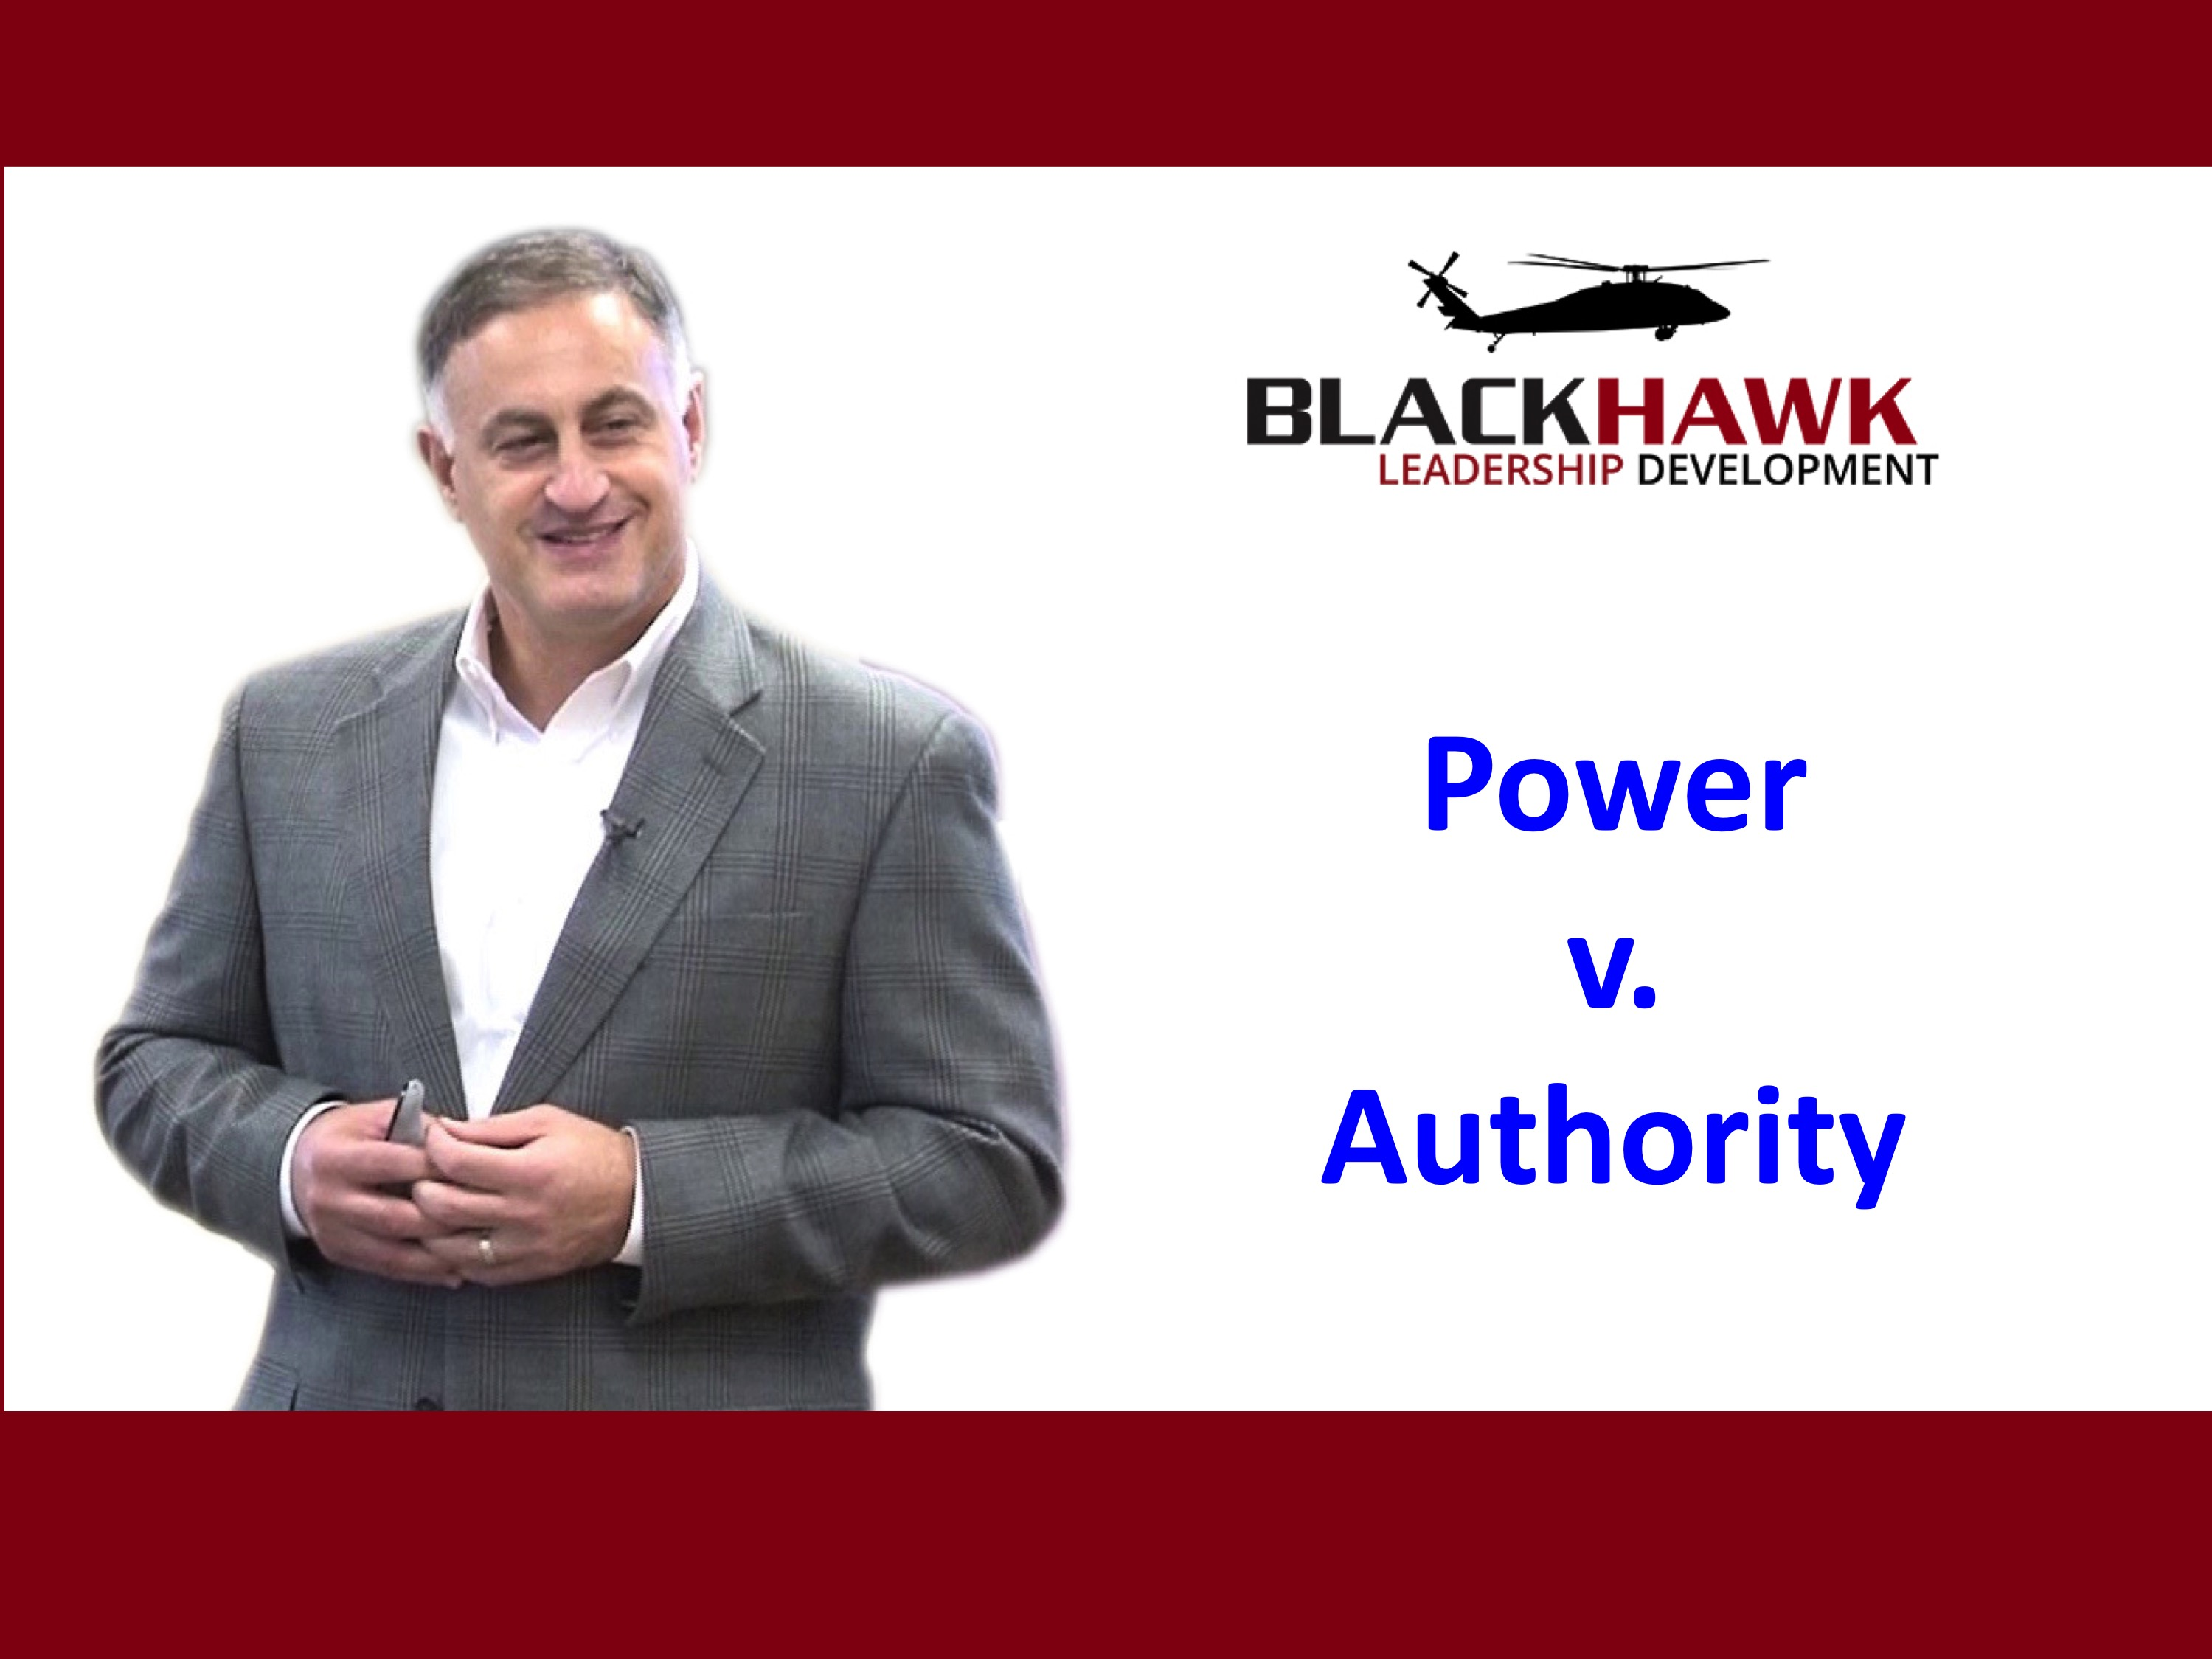 Power and Authority: What's it Got to do with Leadership?